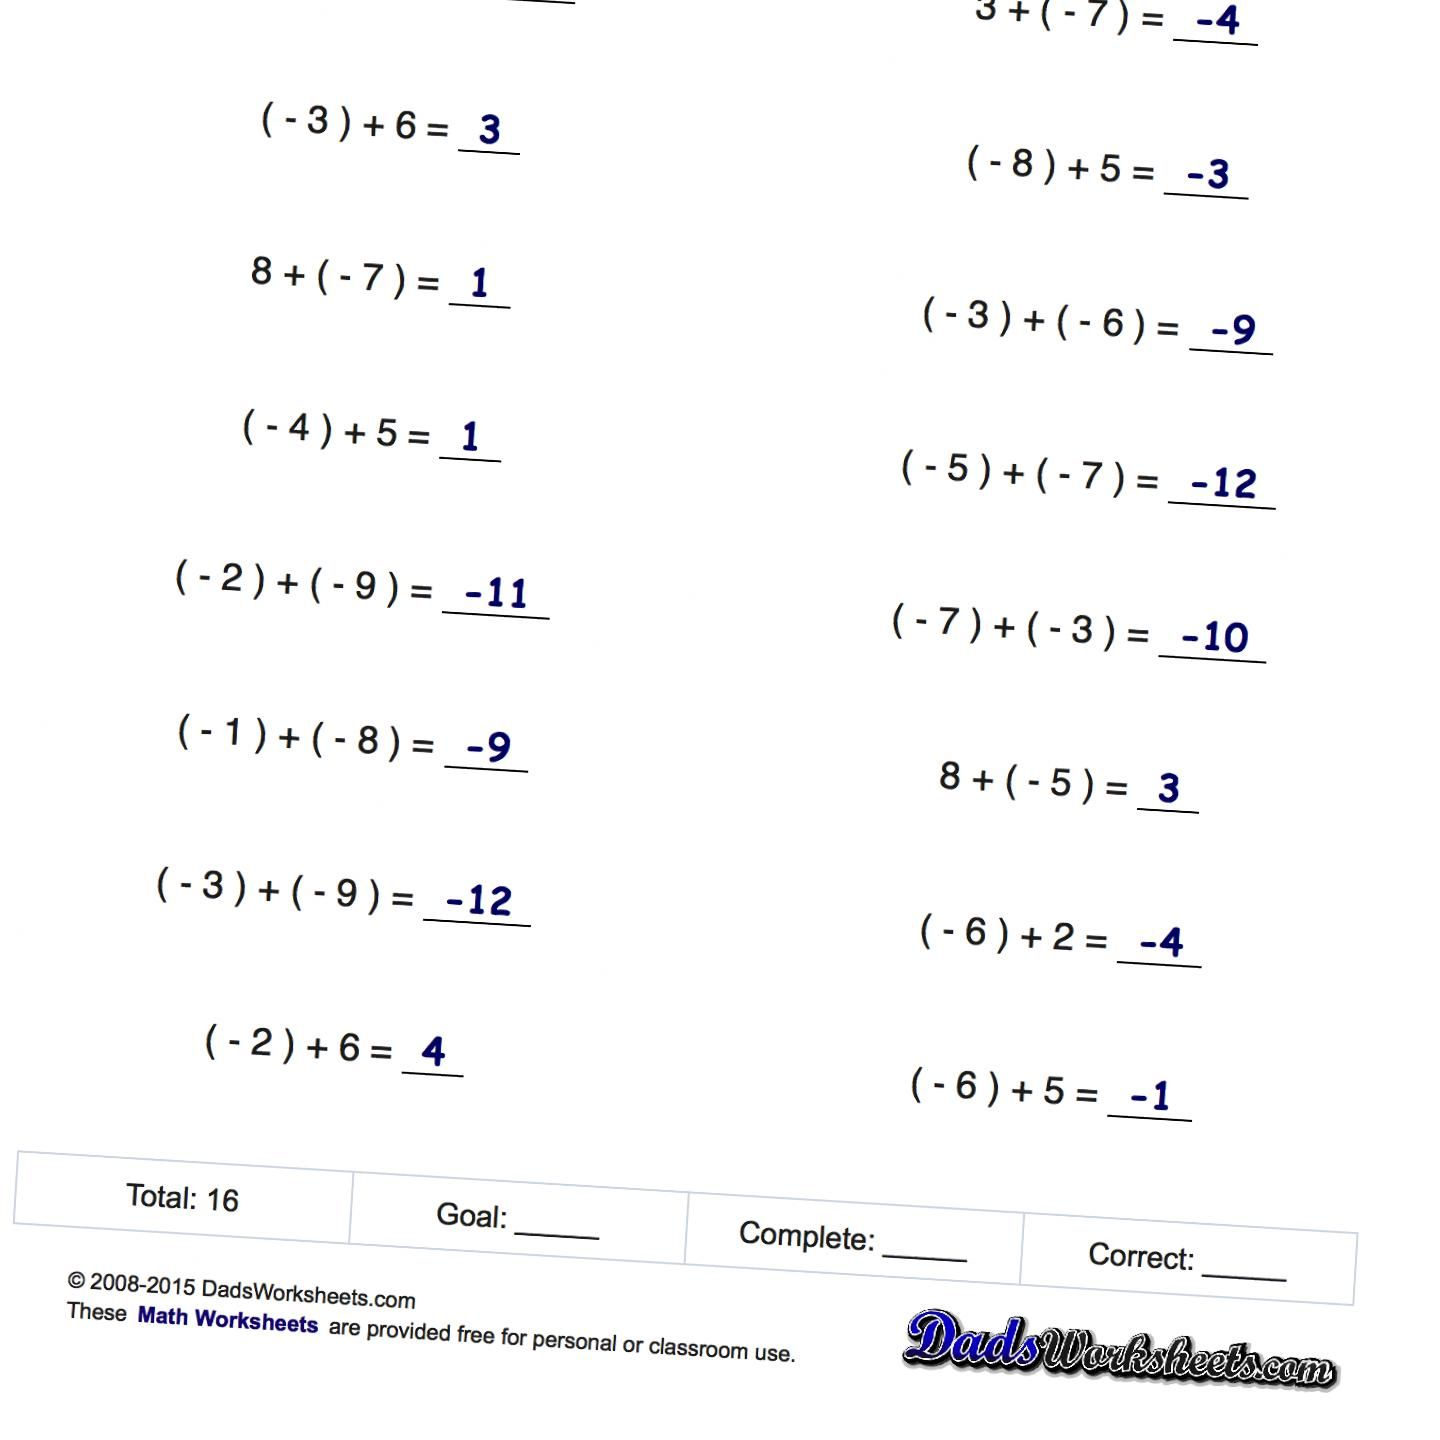 Worksheet Adding And Subtracting Positive And Negative Numbers Worksheets Worksheet Fun